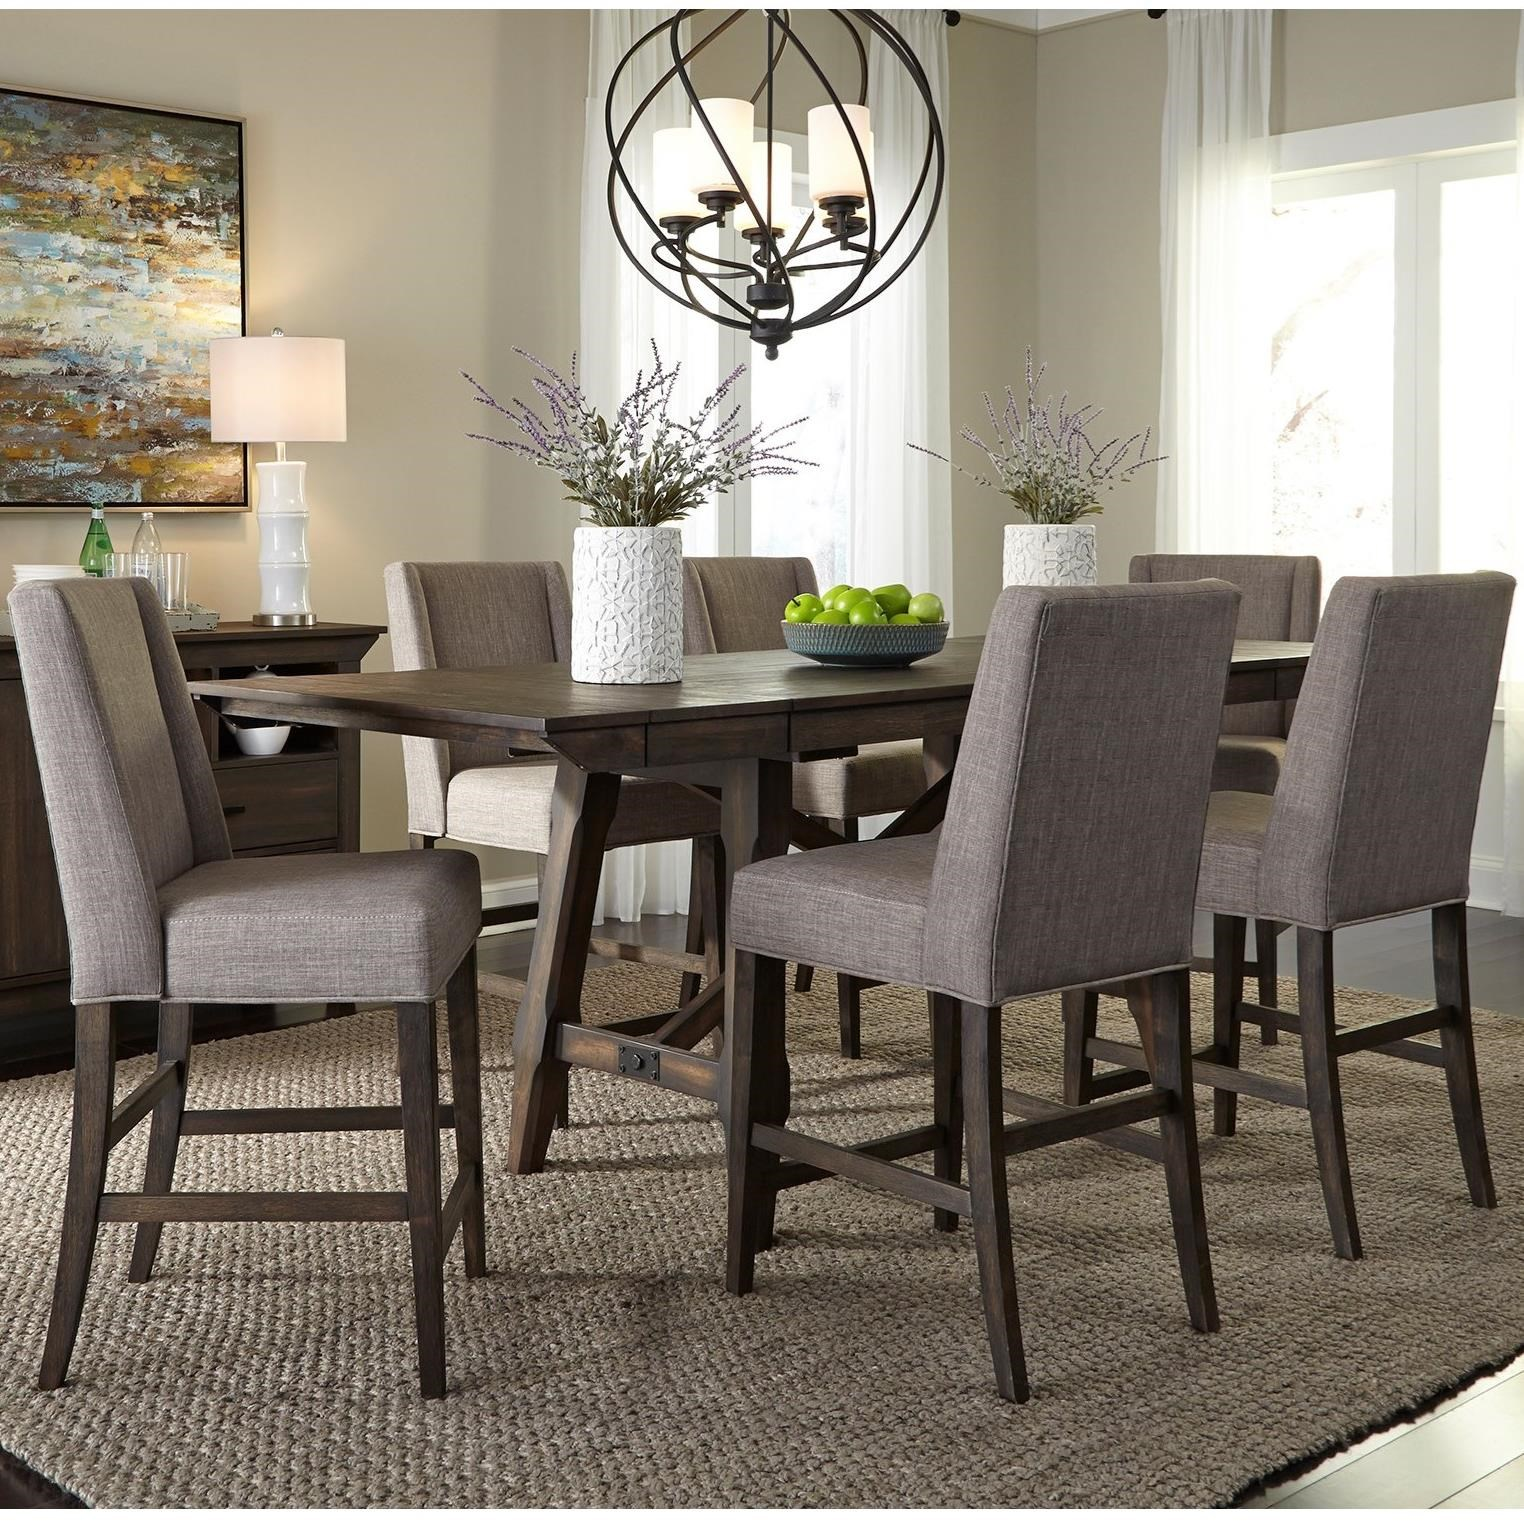 Double Bridge 7 Piece Gathering Table Set by Liberty Furniture at Zak's Home